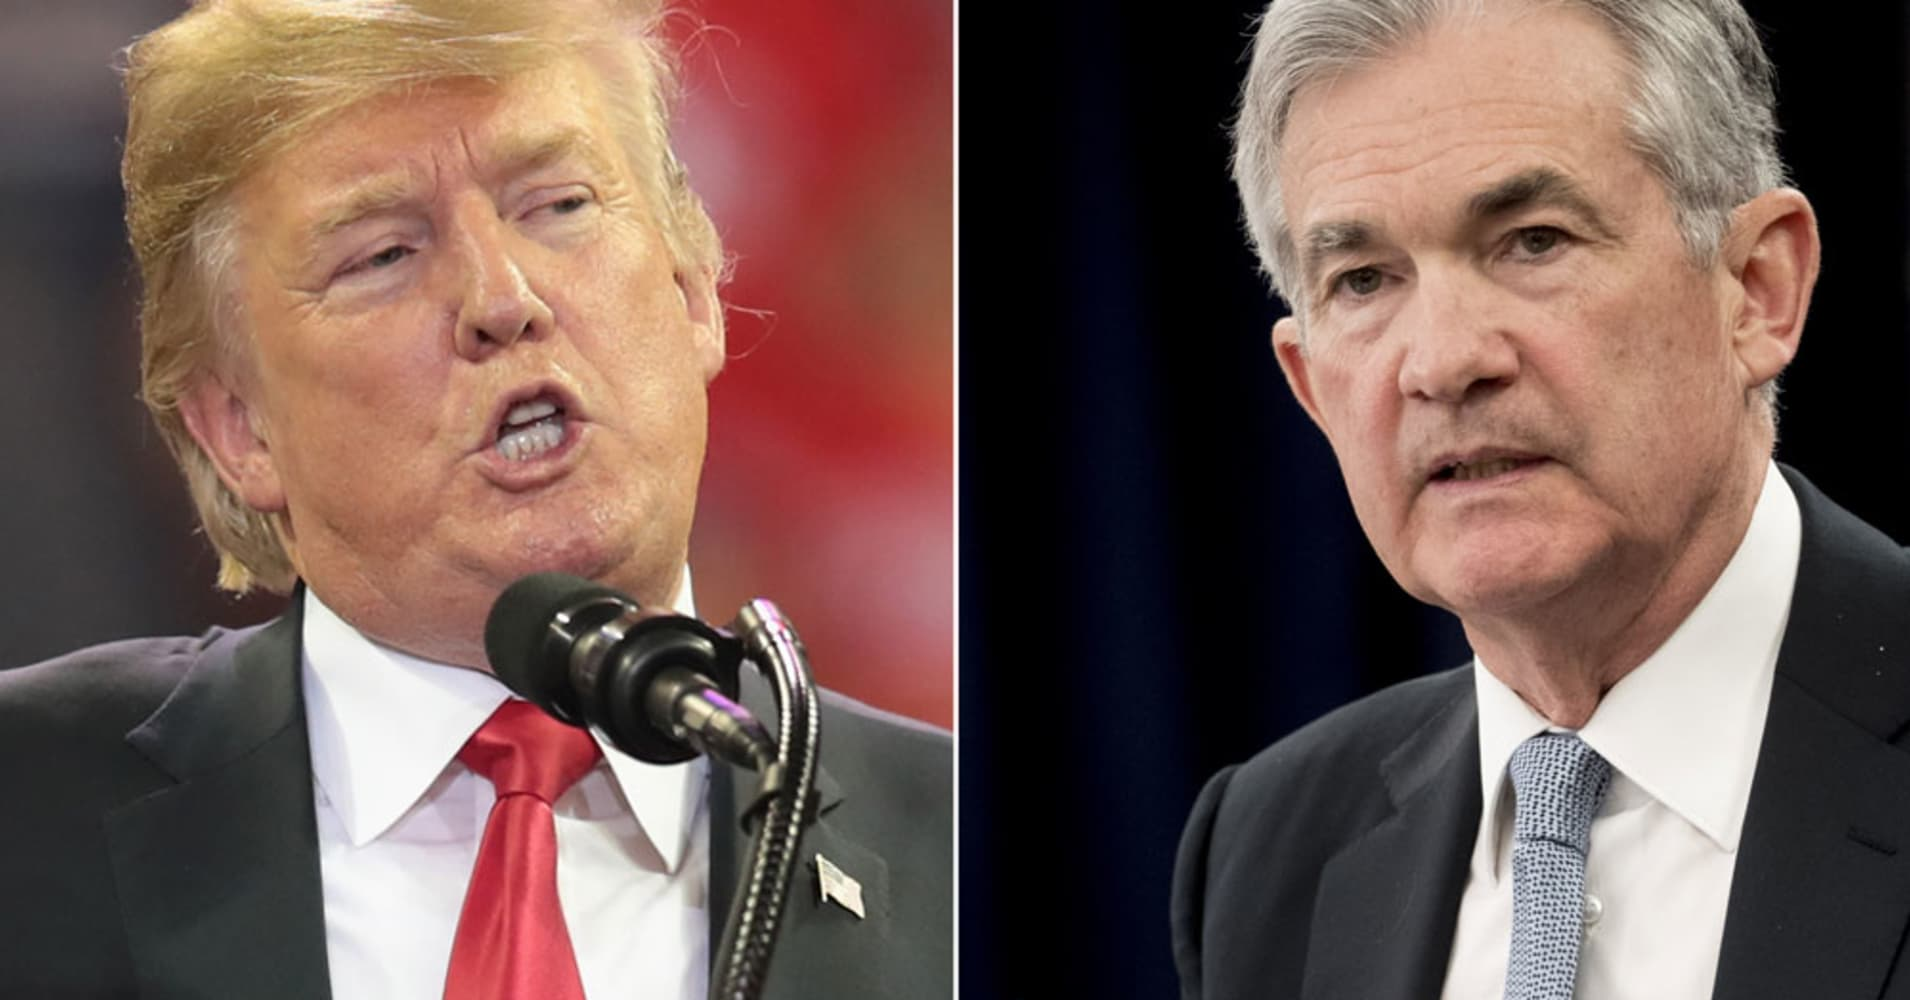 There's another big reason why Trump could blame the Federal Reserve for rising interest rates